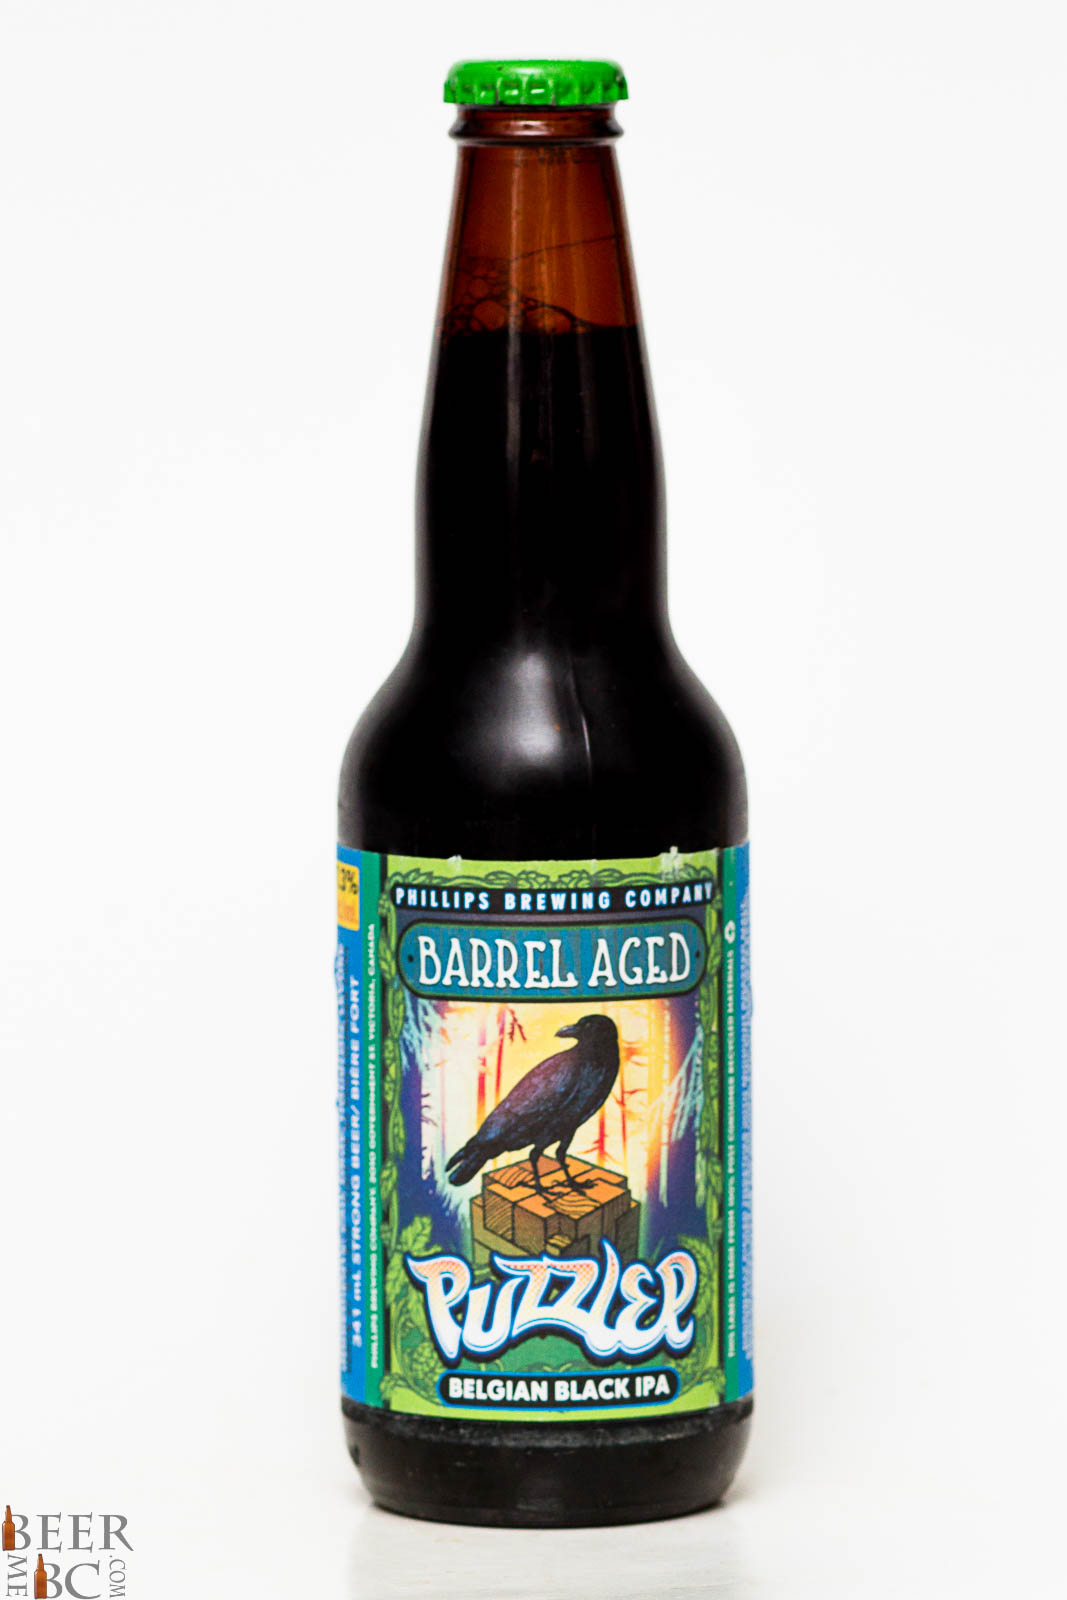 Phillips Brewing Co Barrel Aged Puzzler Belgian Black